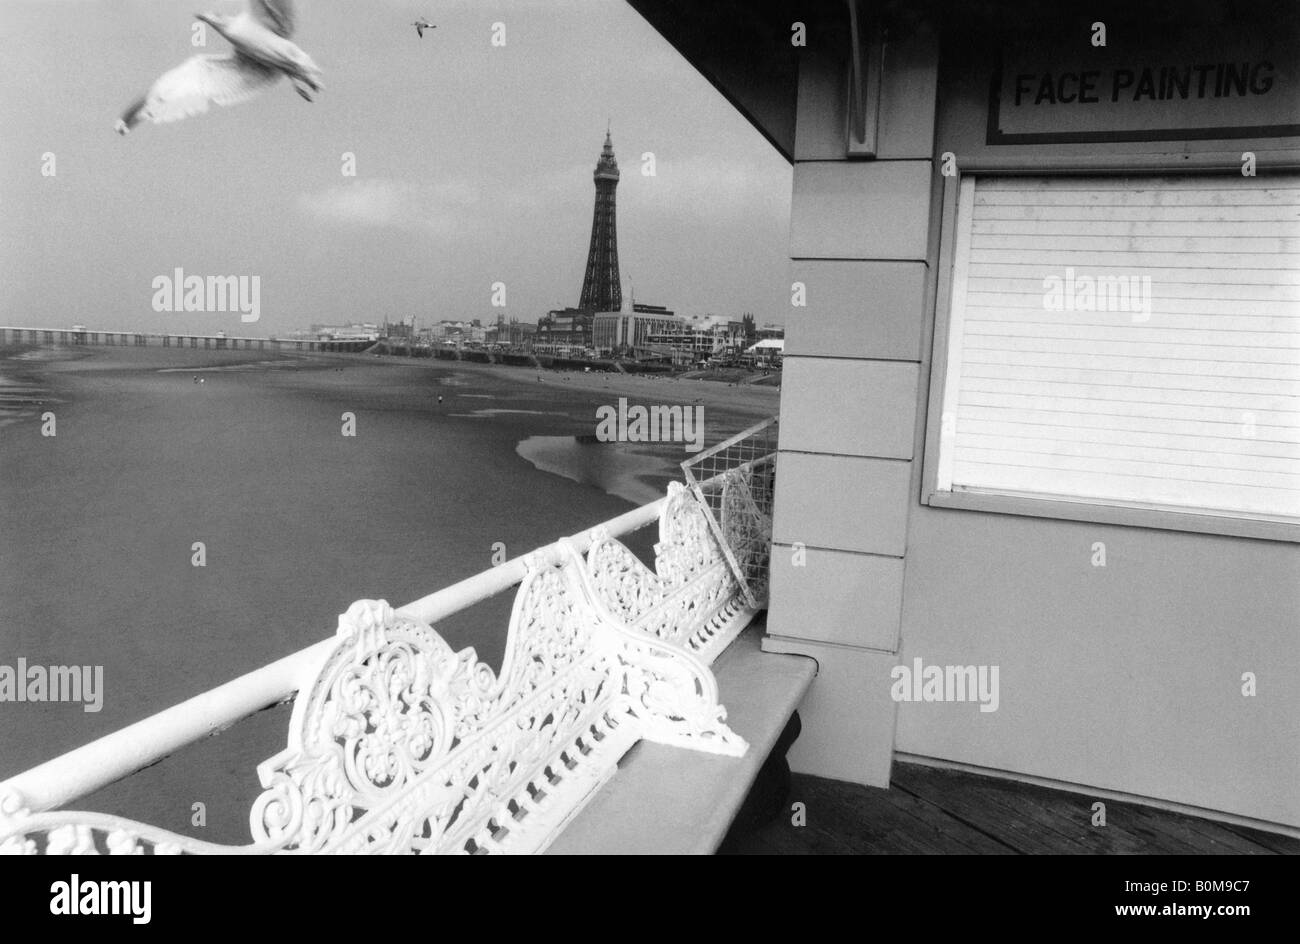 Blackpool Pier & Tower with Seagull, Blackpool, England, UK. - Stock Image